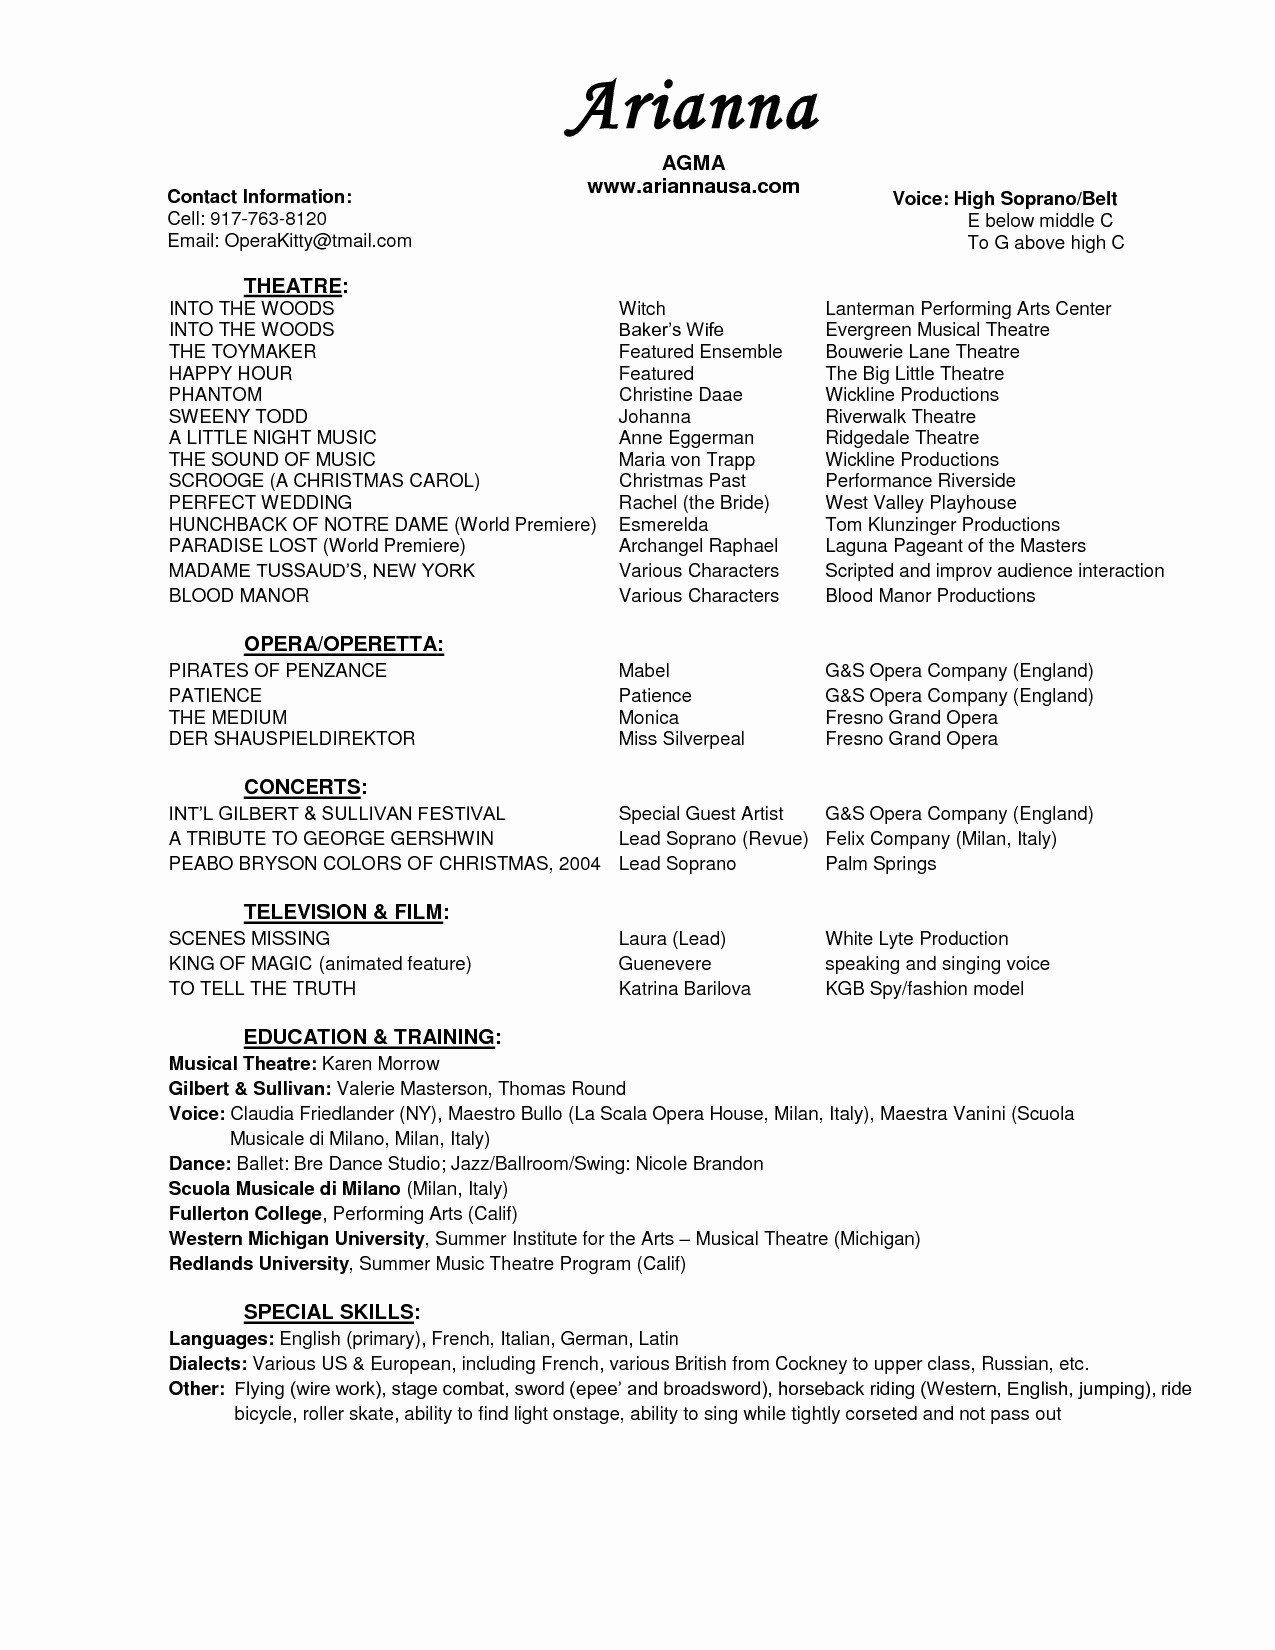 Acting Resume Template with Picture - Musicians Resume Template Save Musical theatre Resume Template